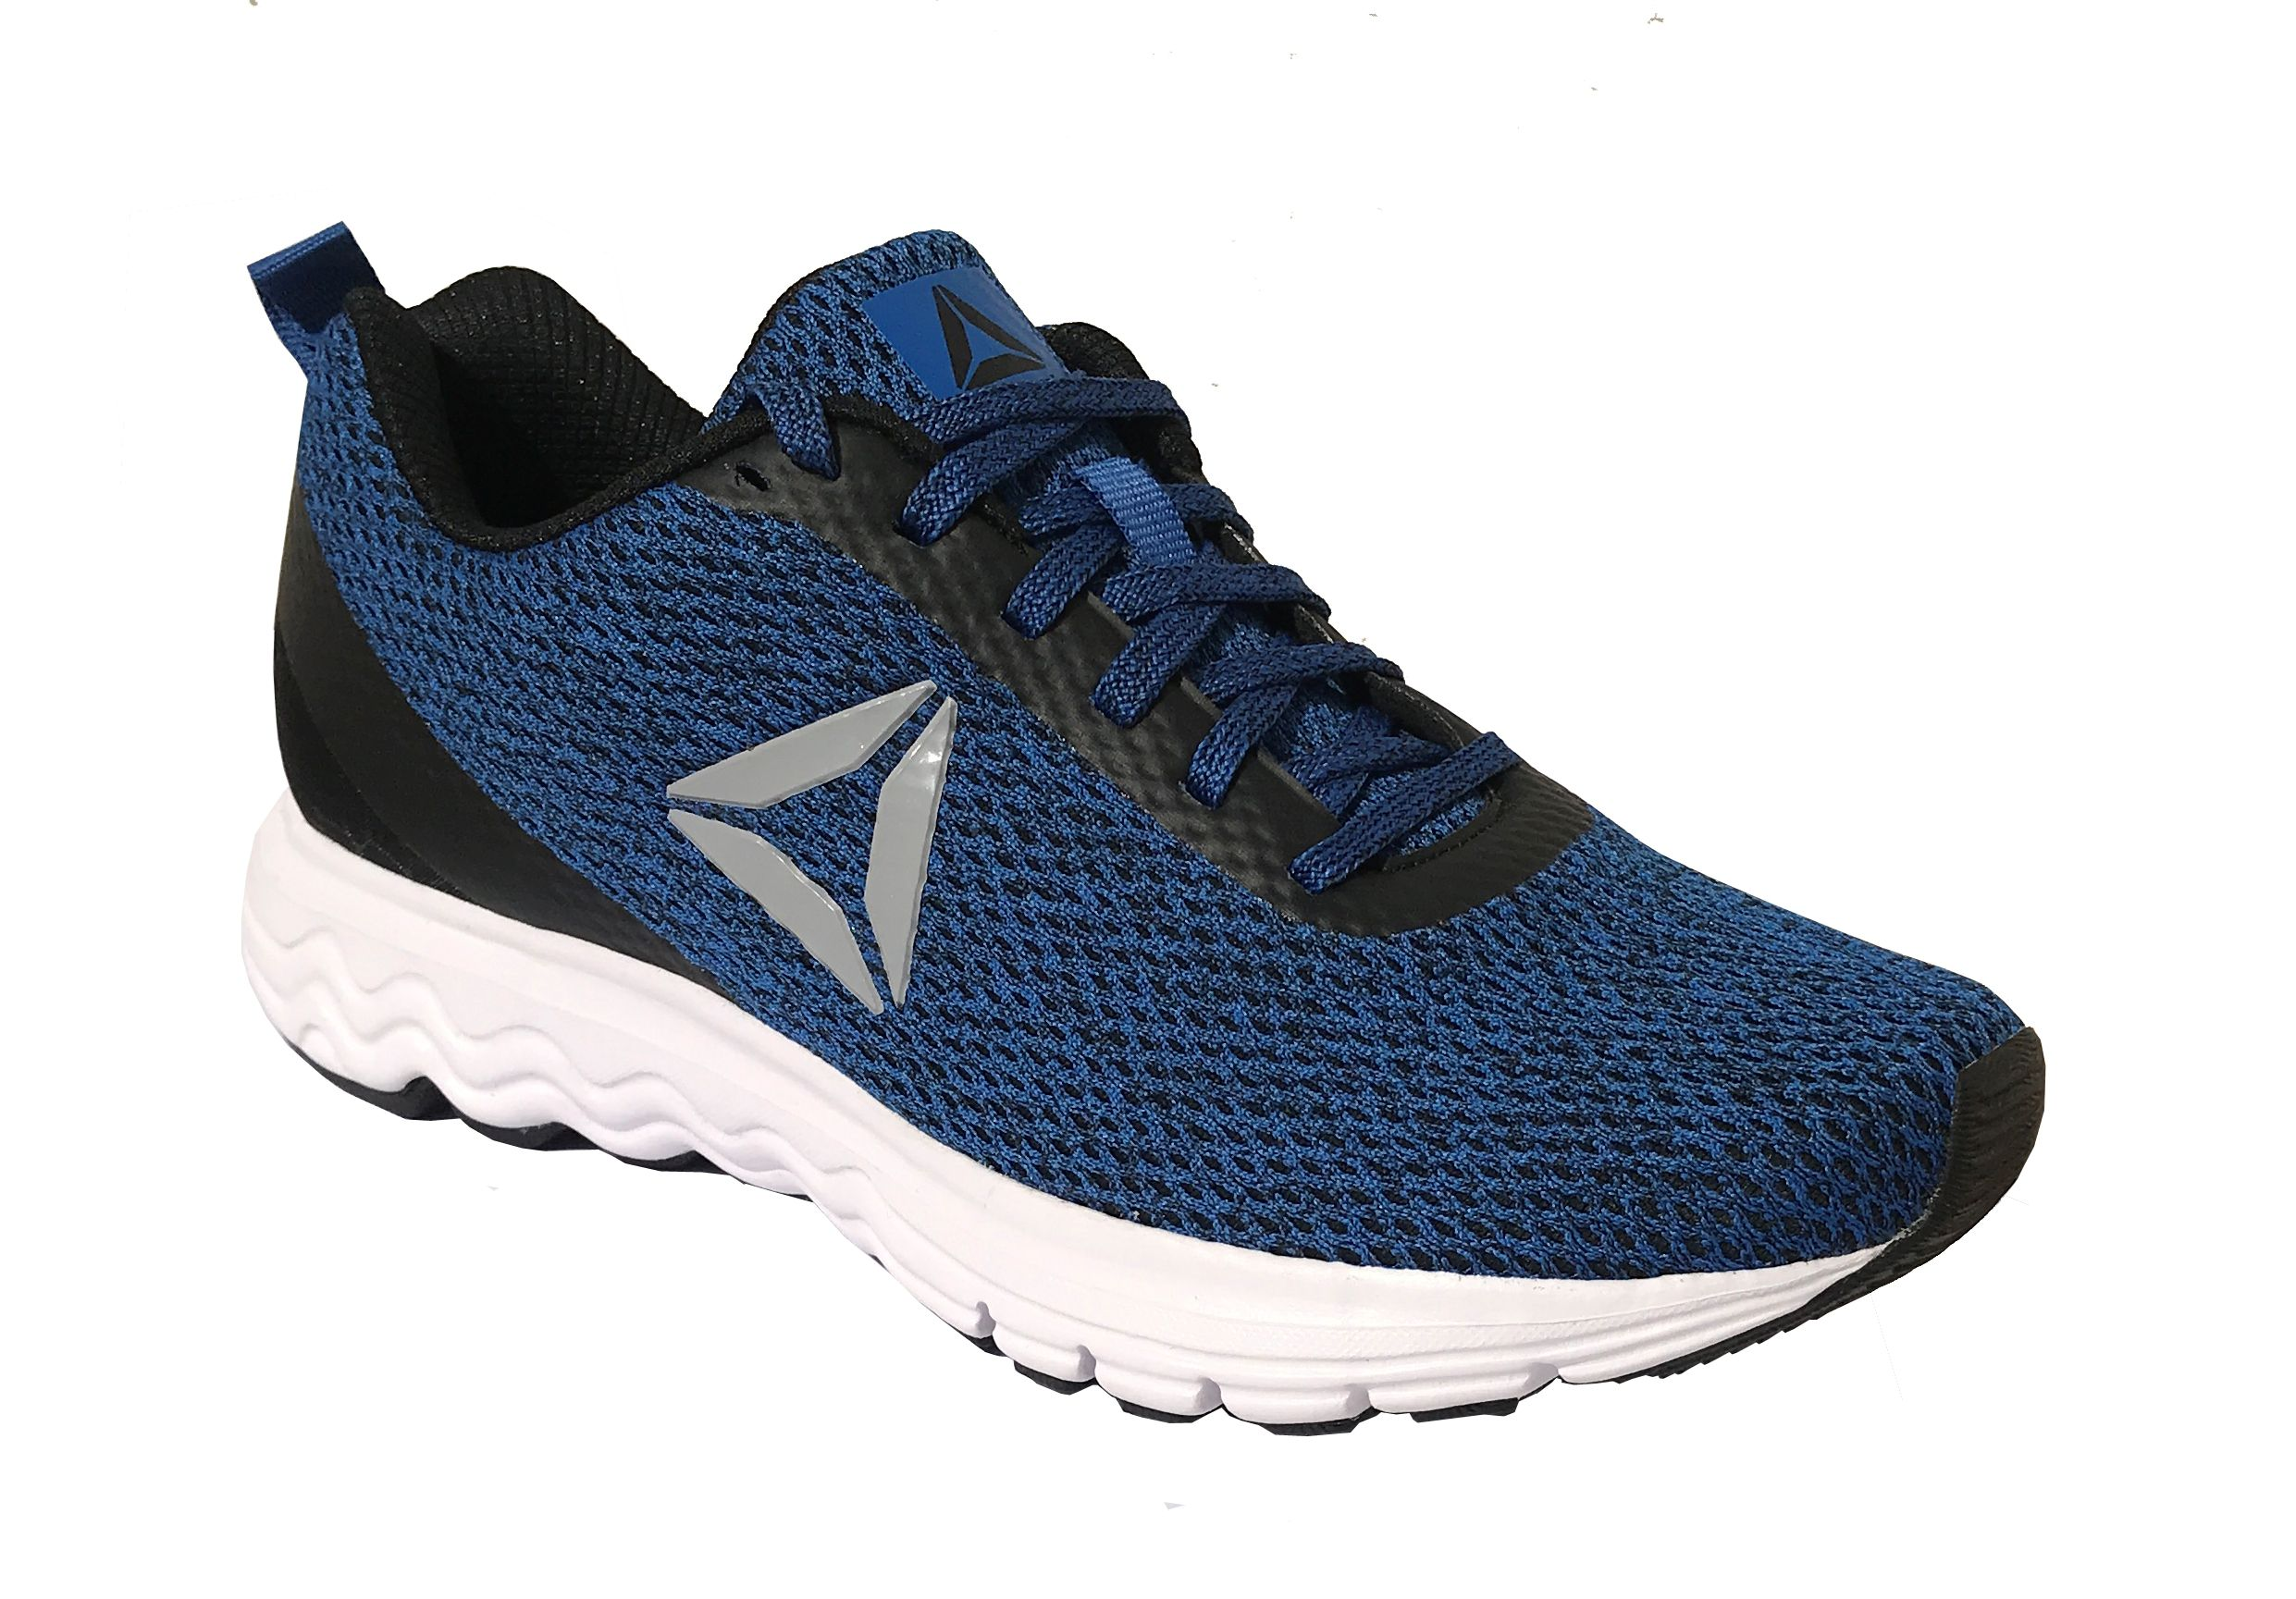 76aa05ec8709 Reebok Zoom Runner Men s Blue Running Shoes - Buy Reebok Zoom Runner Men s  Blue Running Shoes Online at Best Prices in India on Snapdeal